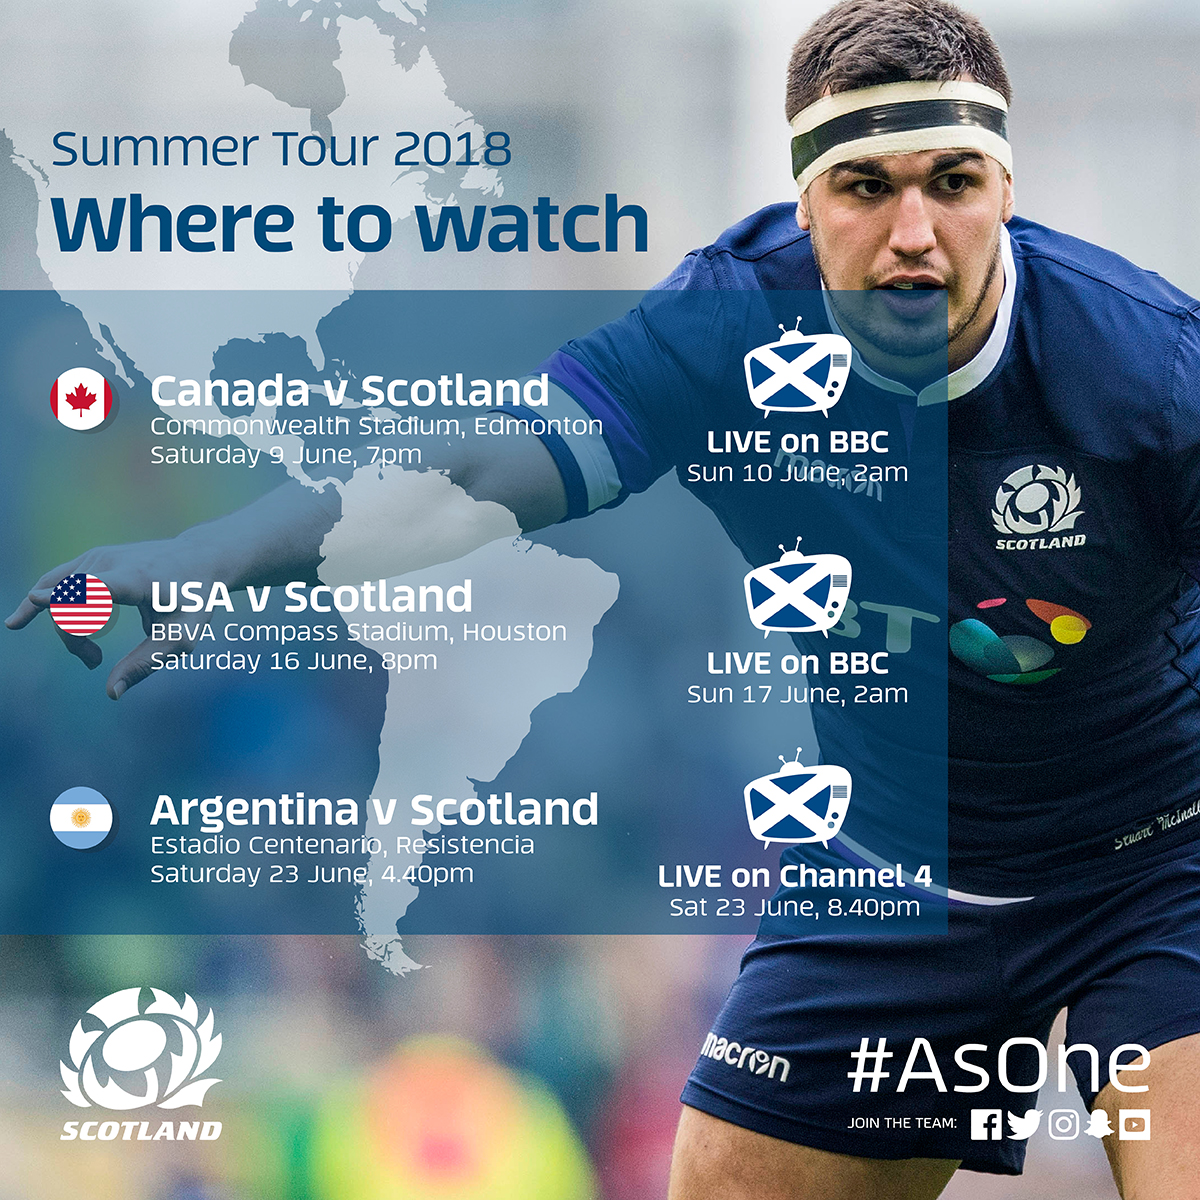 Scotland's whole summer tour to be shown on free-to-air TV